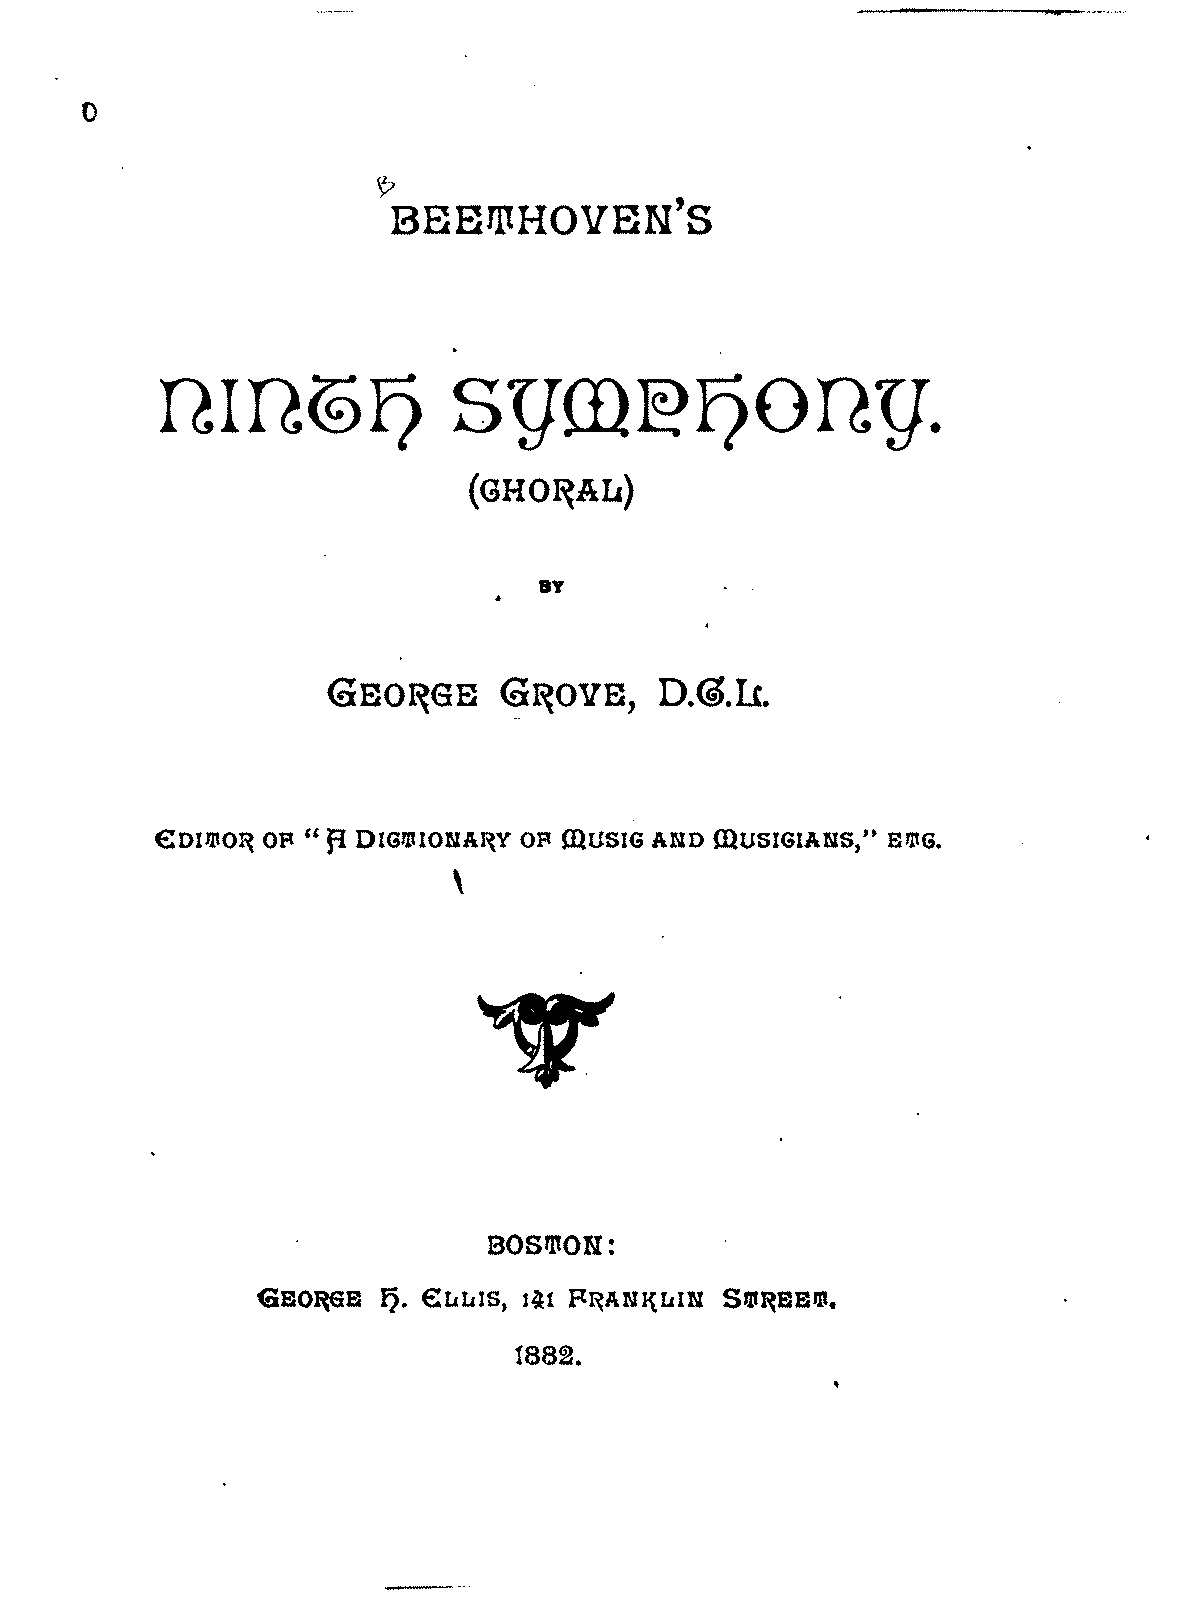 PMLP192828-Beethoven s ninth symphony choral.pdf